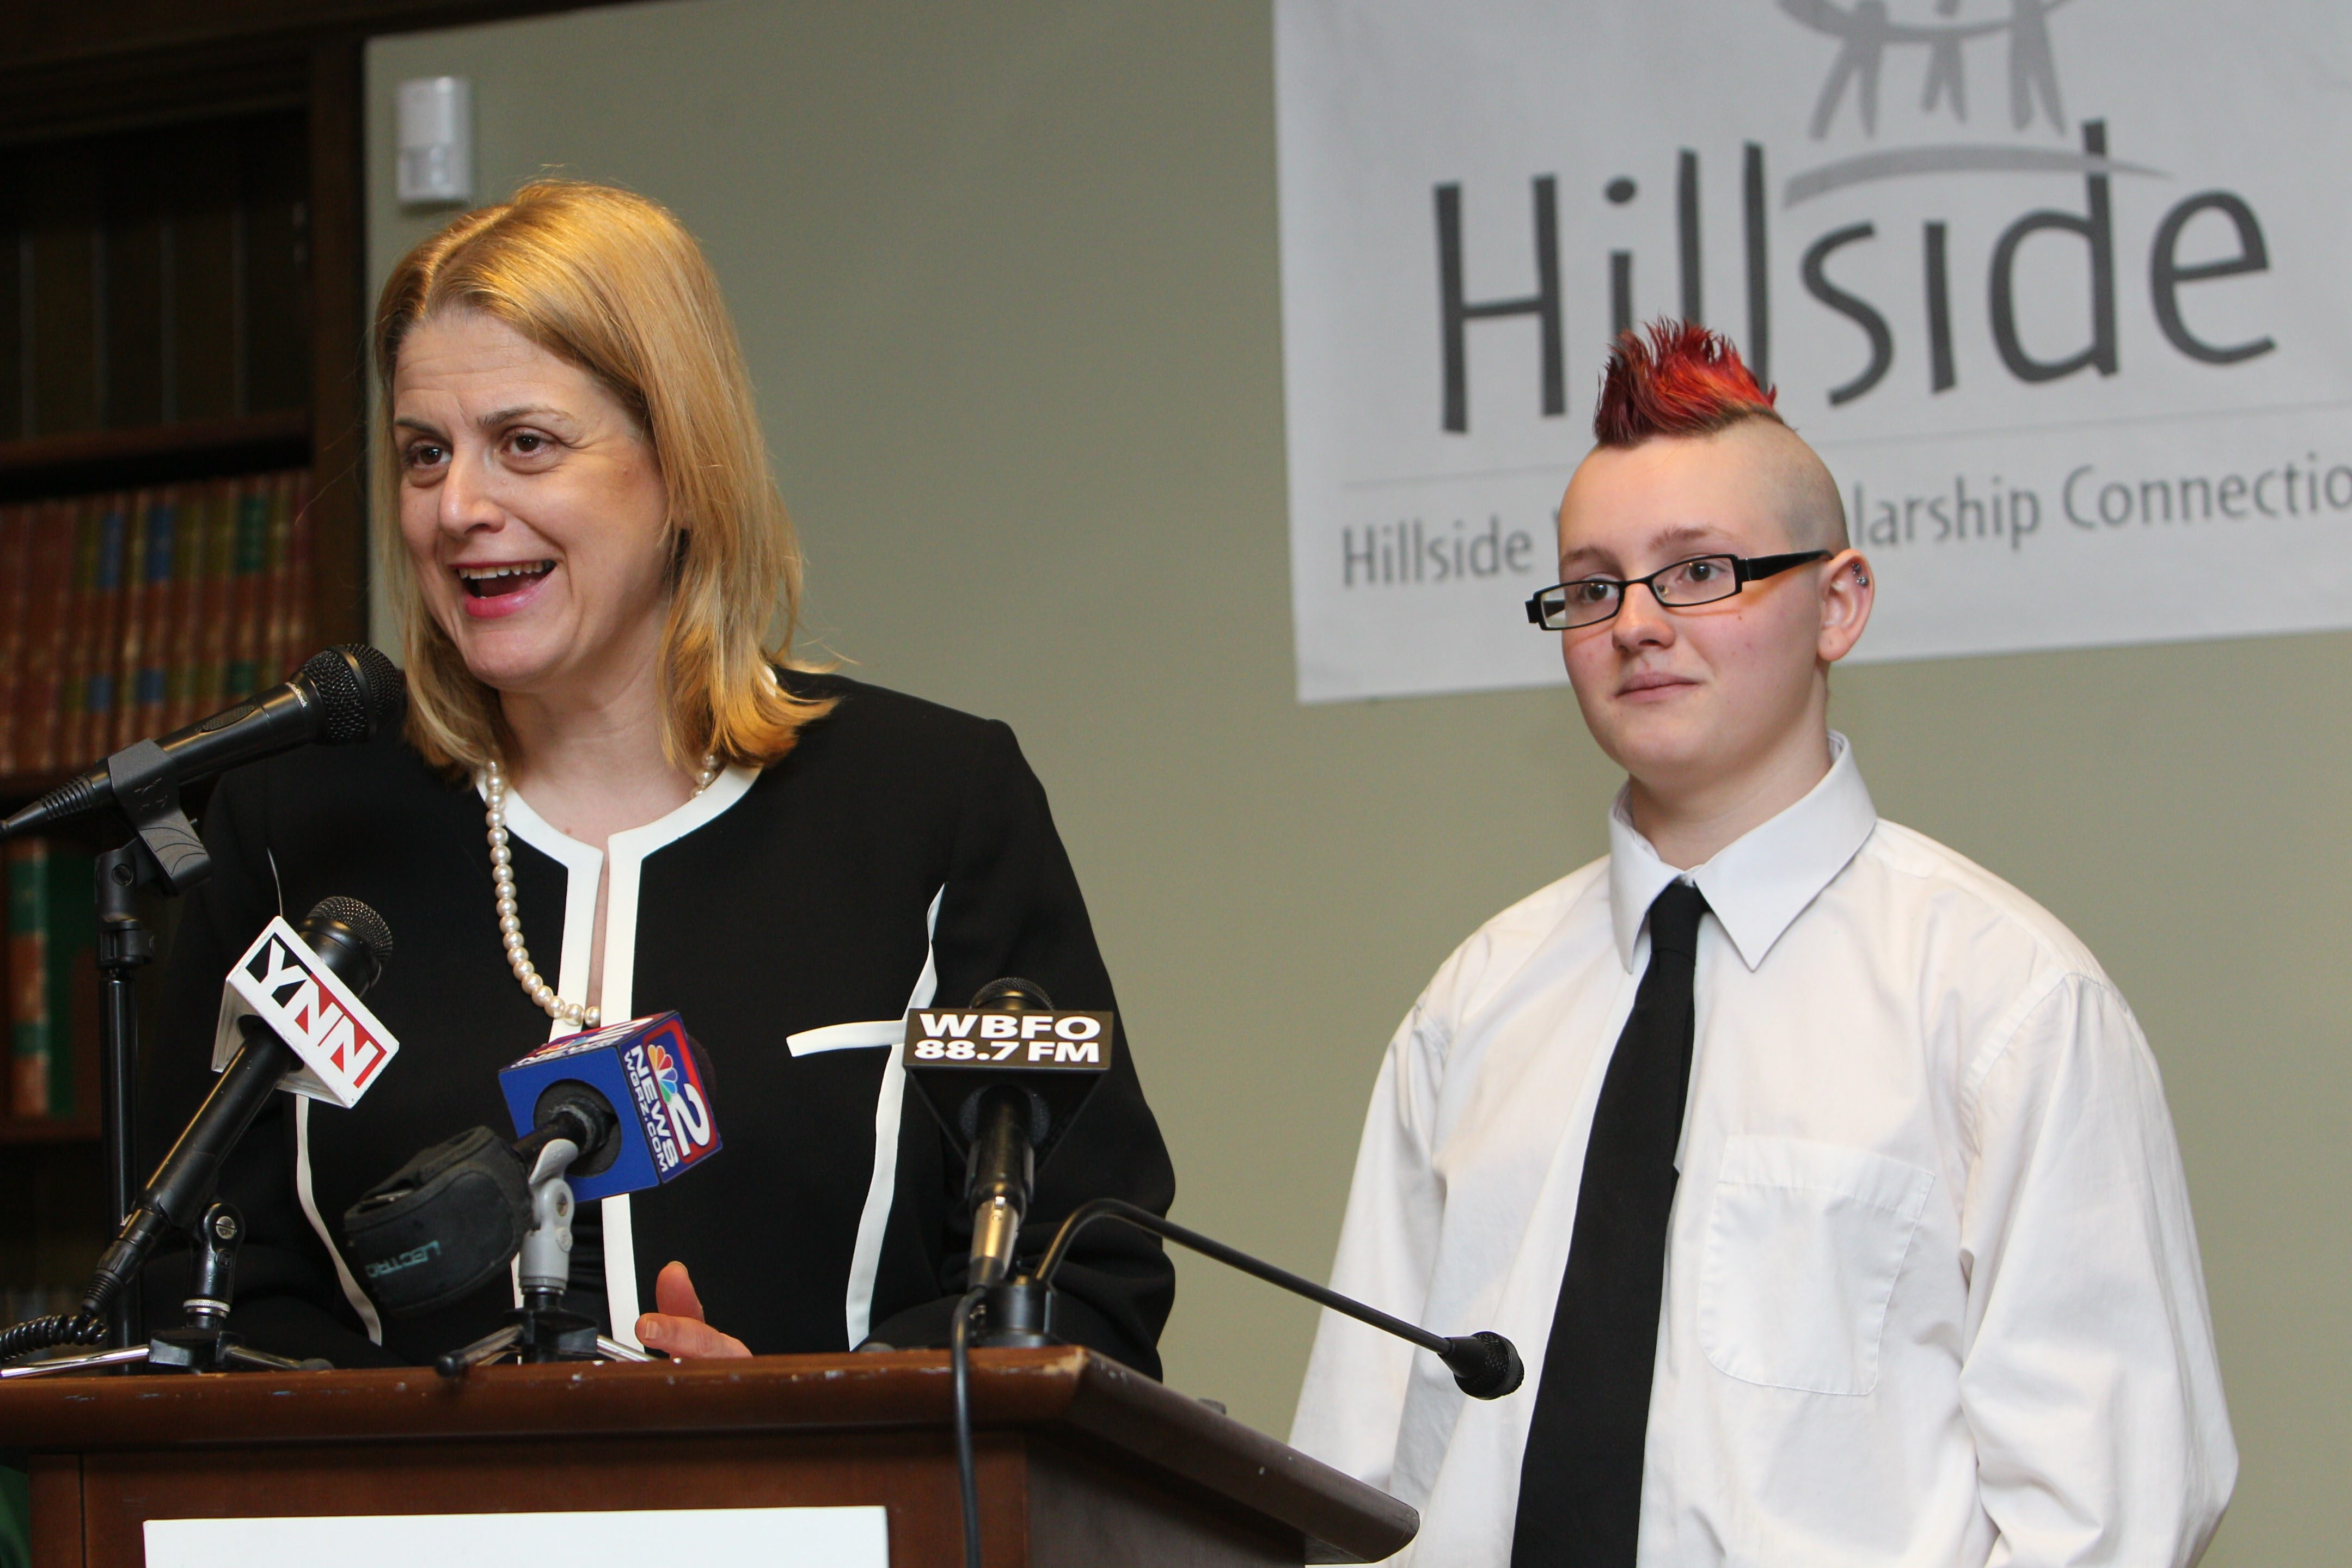 South Park Principal Terri Schuta introduces Tyler Krusko, a student taking part in the Hillside Work-Scholarship dropout prevention program started by Wegmans, at a media event Wednesday.